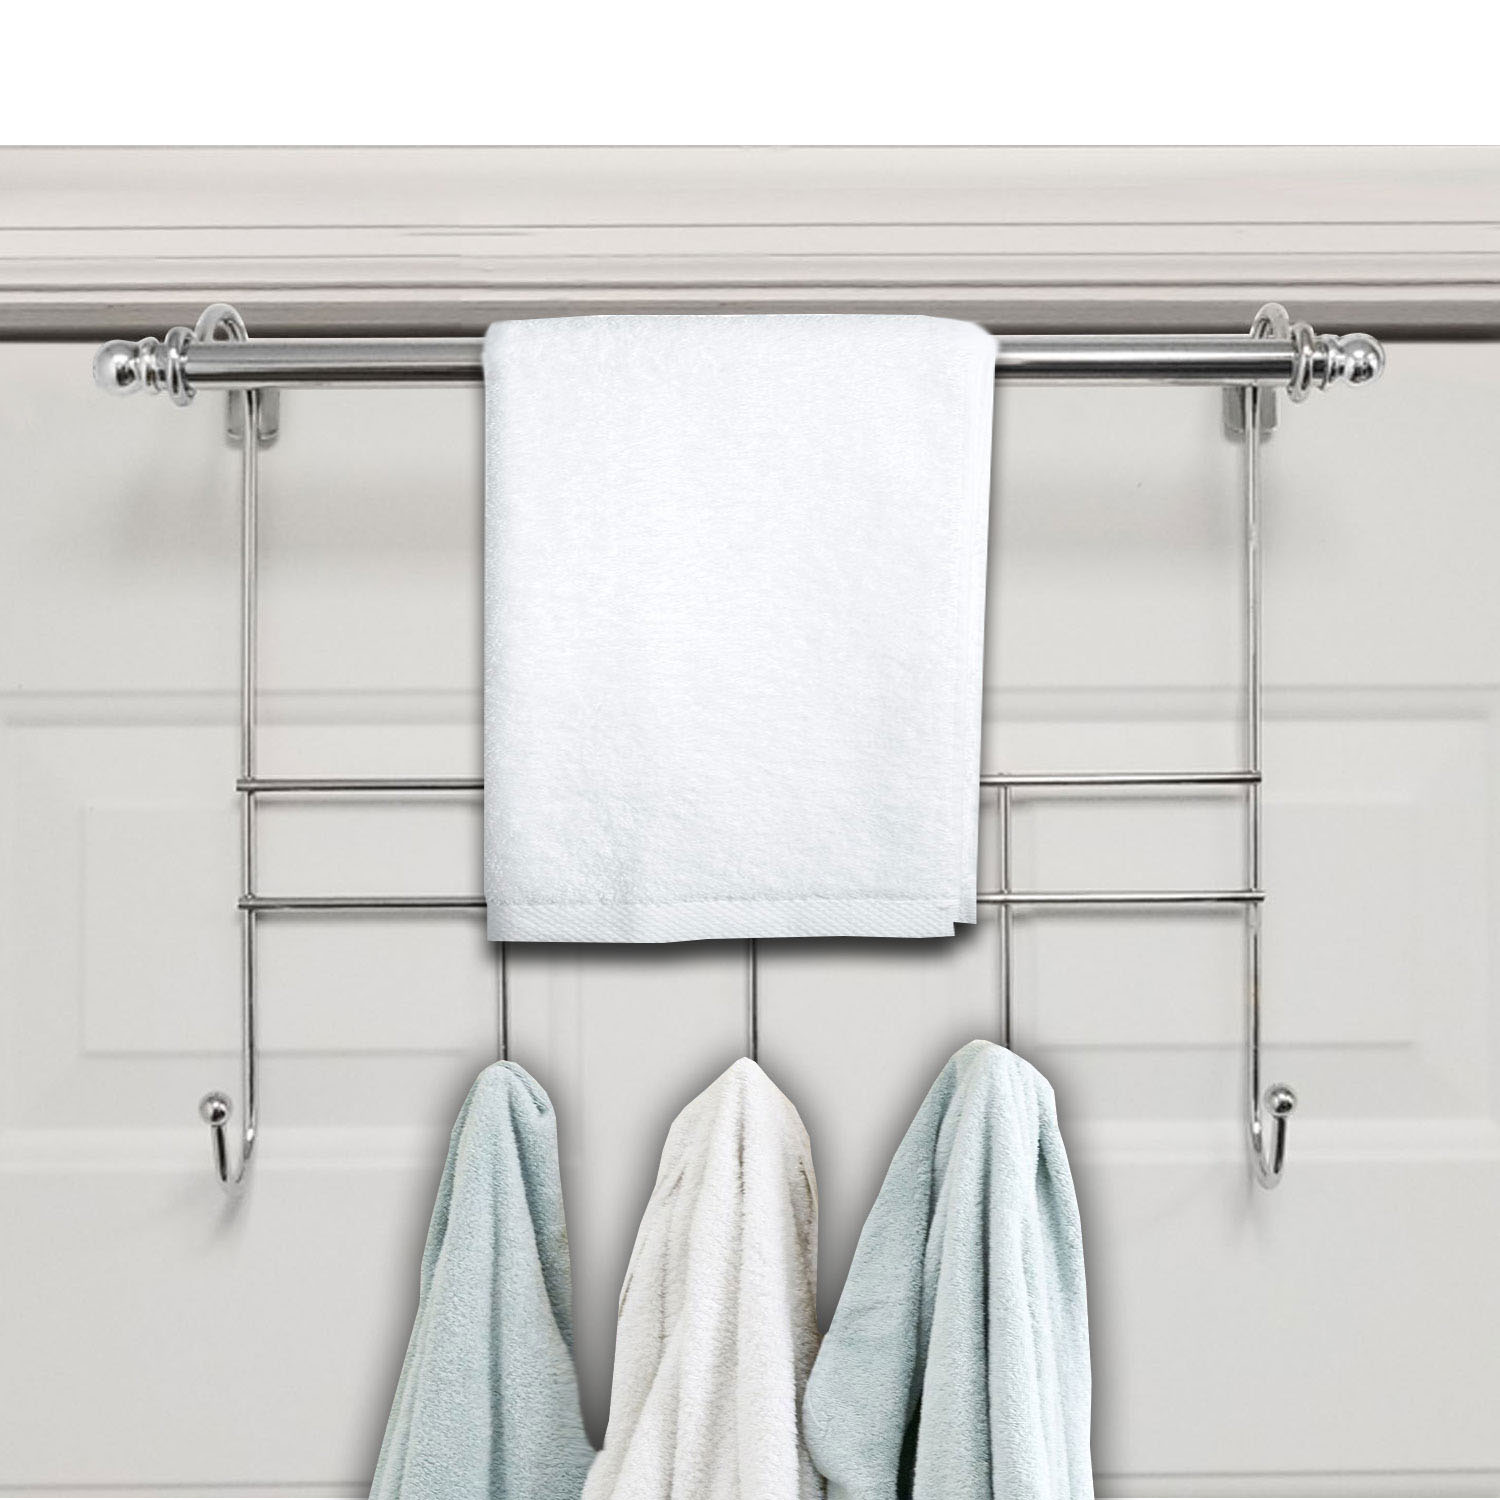 Towel Door Hanger Includes Rack Bar 5 Hooks No Embly Required 17 Inches Wide 2 Inch Over The Hook E Chrome